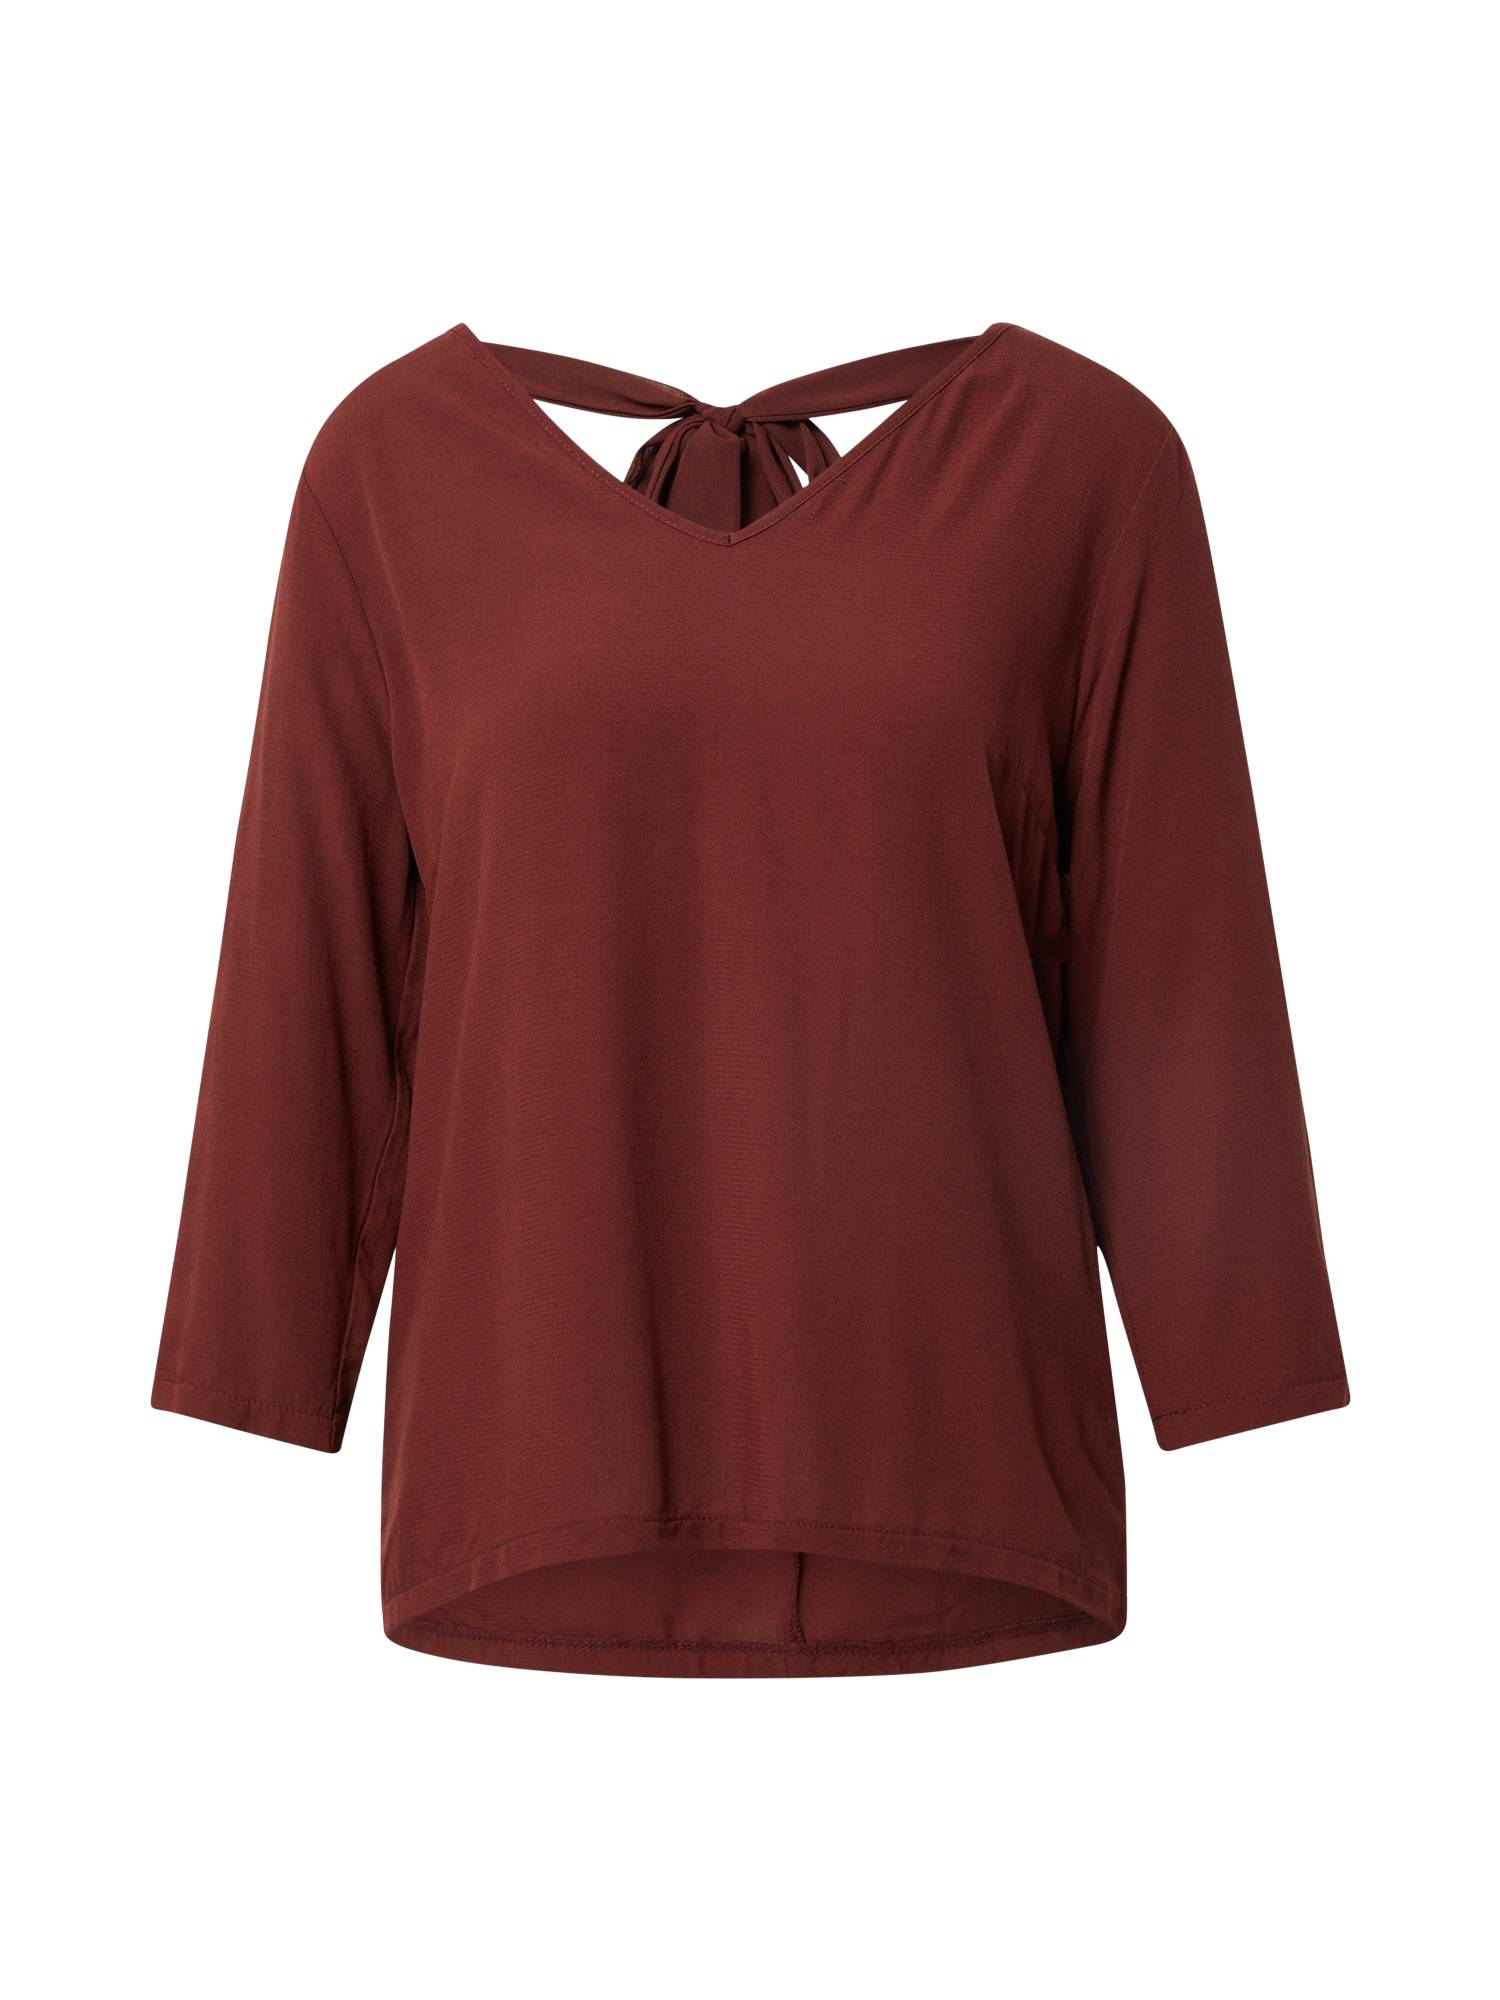 ABOUT YOU Chemisier 'Farine'  - Rouge - Taille: 36 - female